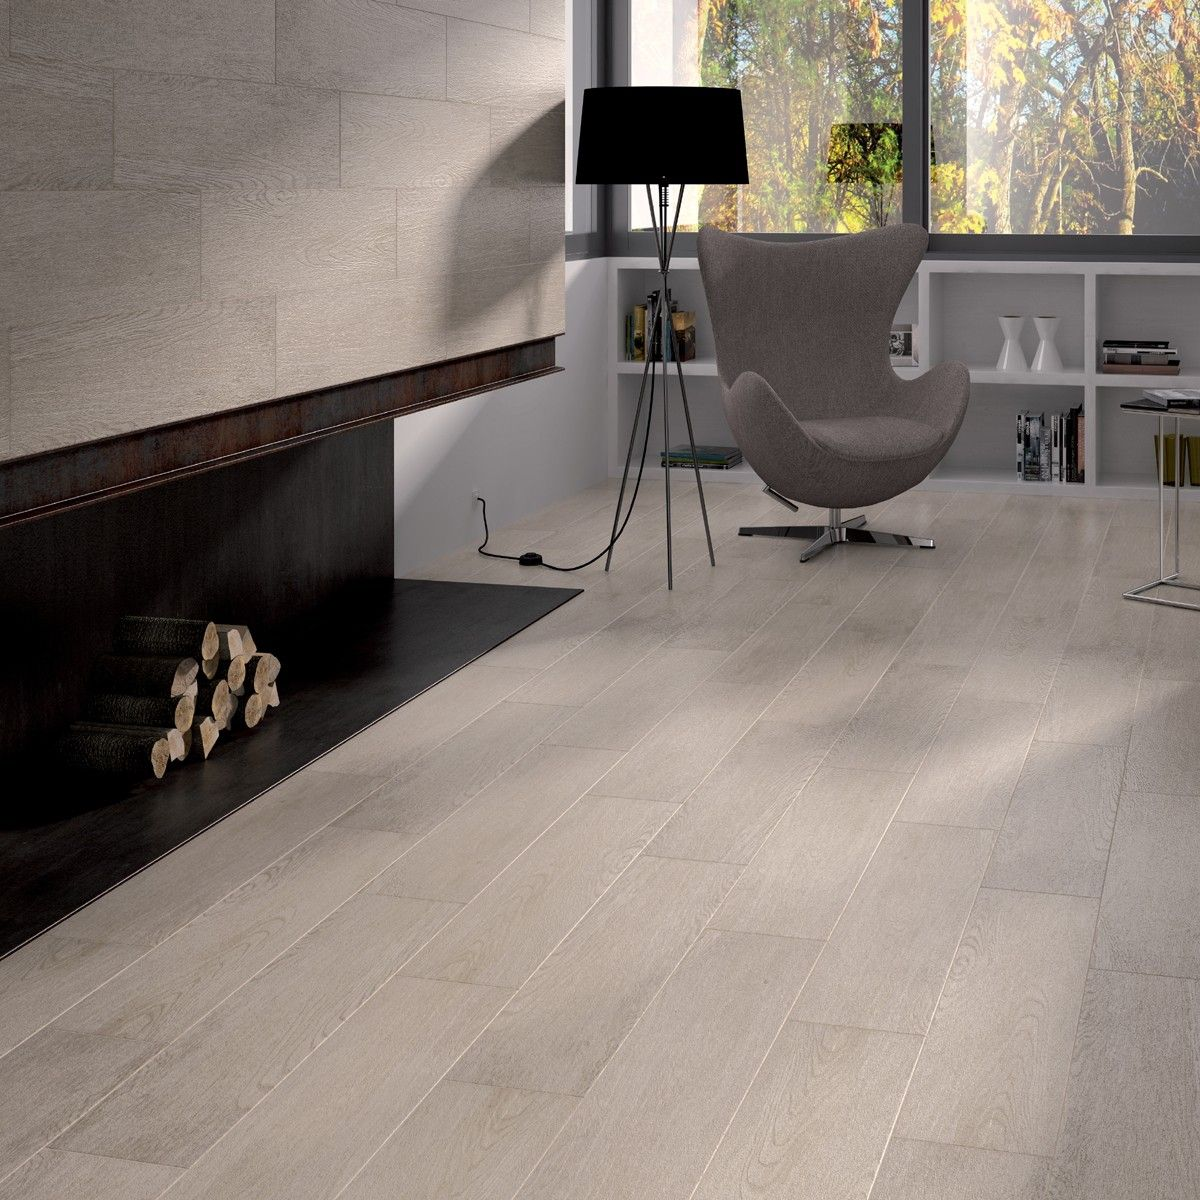 Downtown teka 950mm x 240mm floors pinterest tiles online crown tiles online shop stocks large ranges of tiles dailygadgetfo Gallery